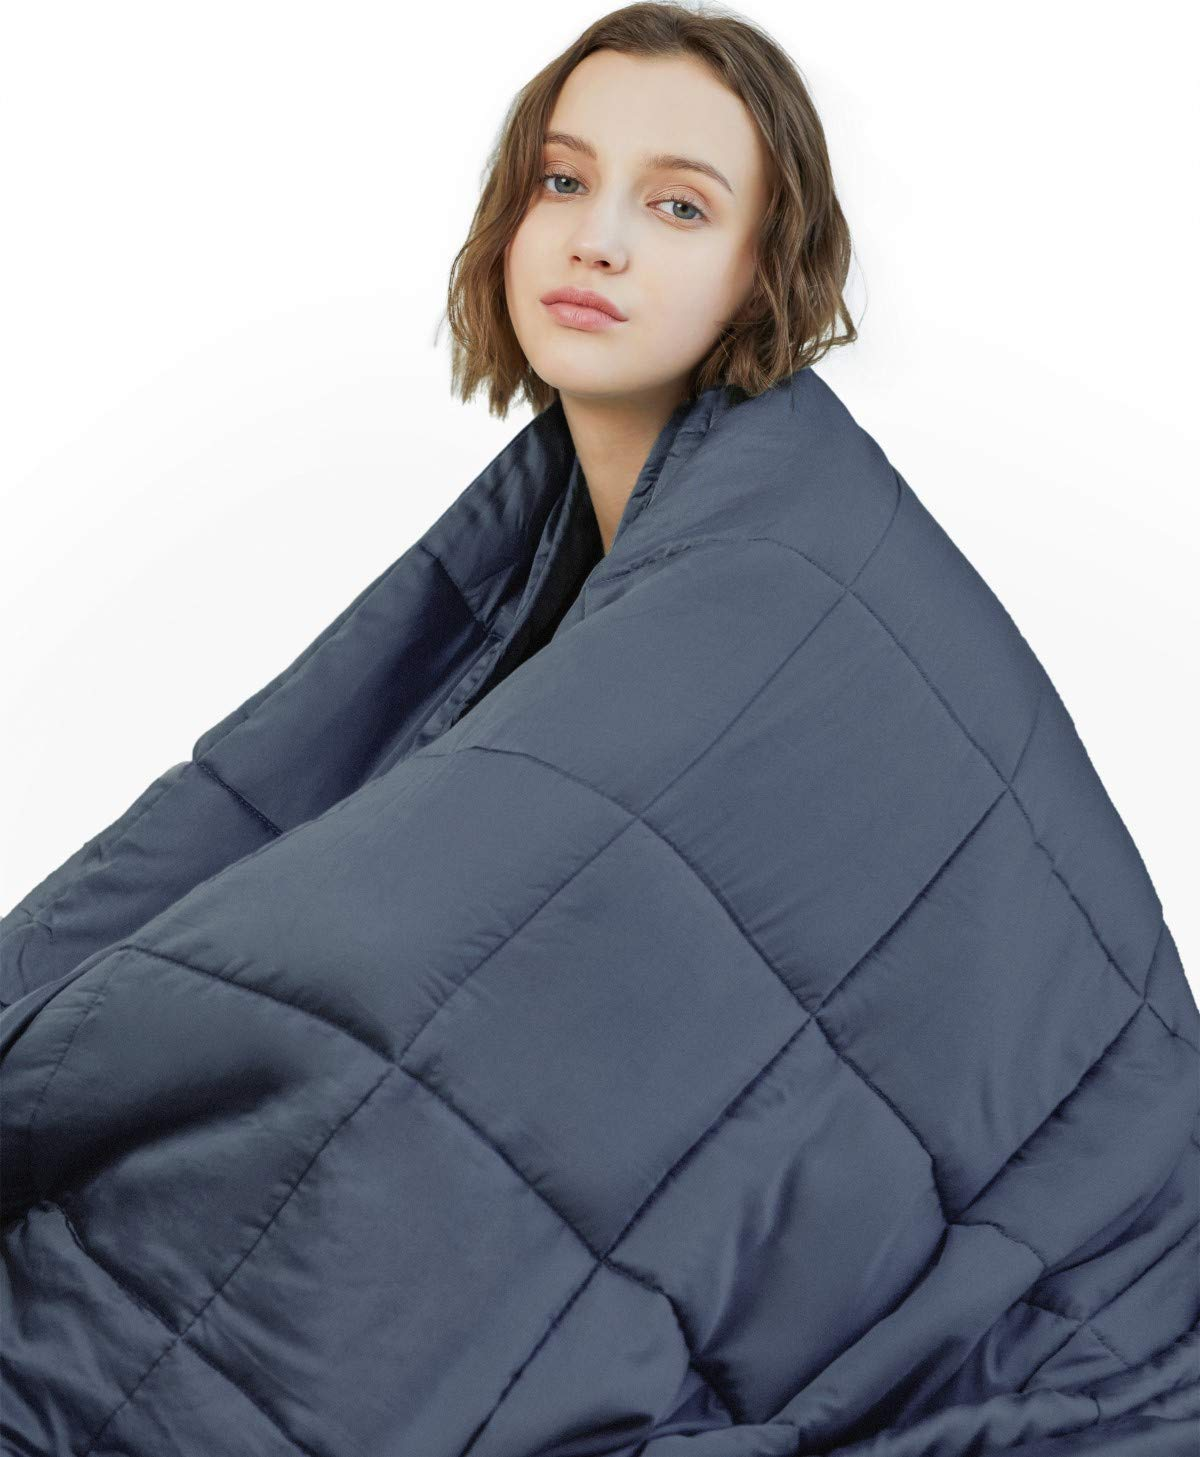 YnM Best Weighted Blanket Review by www.snoremagazine.com